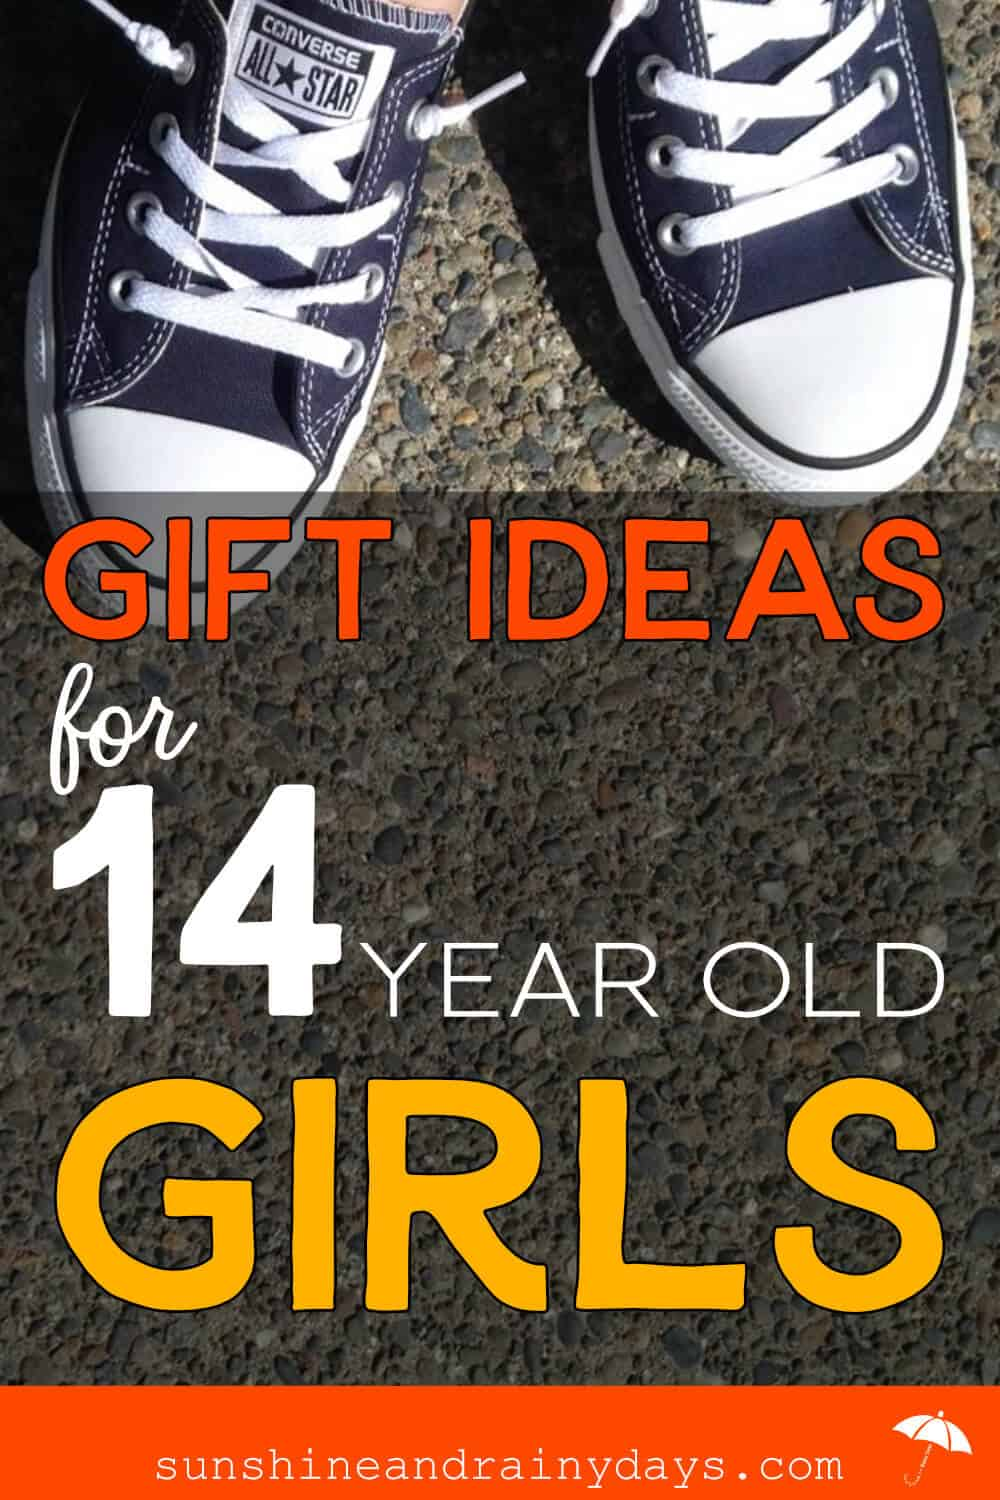 Gift Ideas For 14 Year Old Girls